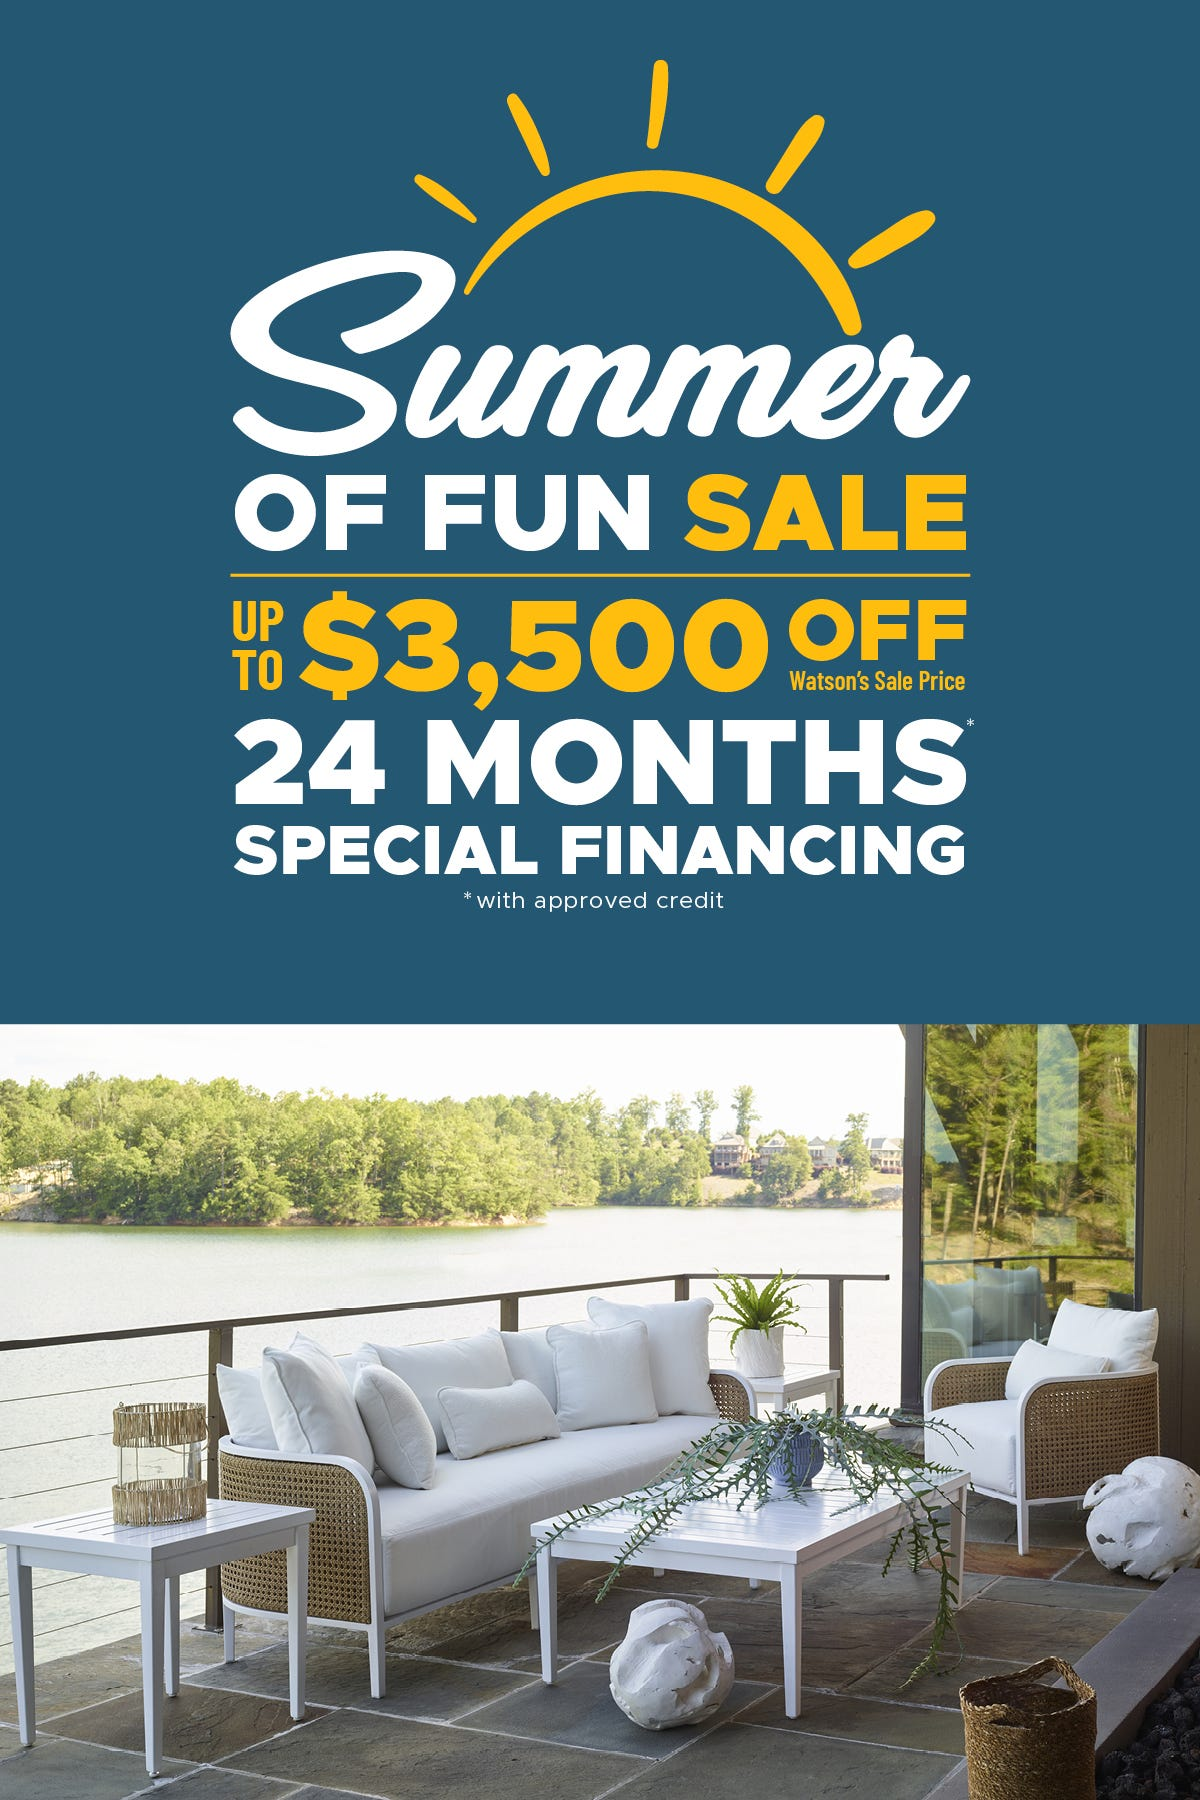 Summer of Fun Sale. Up to $3,500 off Watson's sale price. 24 months special financing. With approved credit.